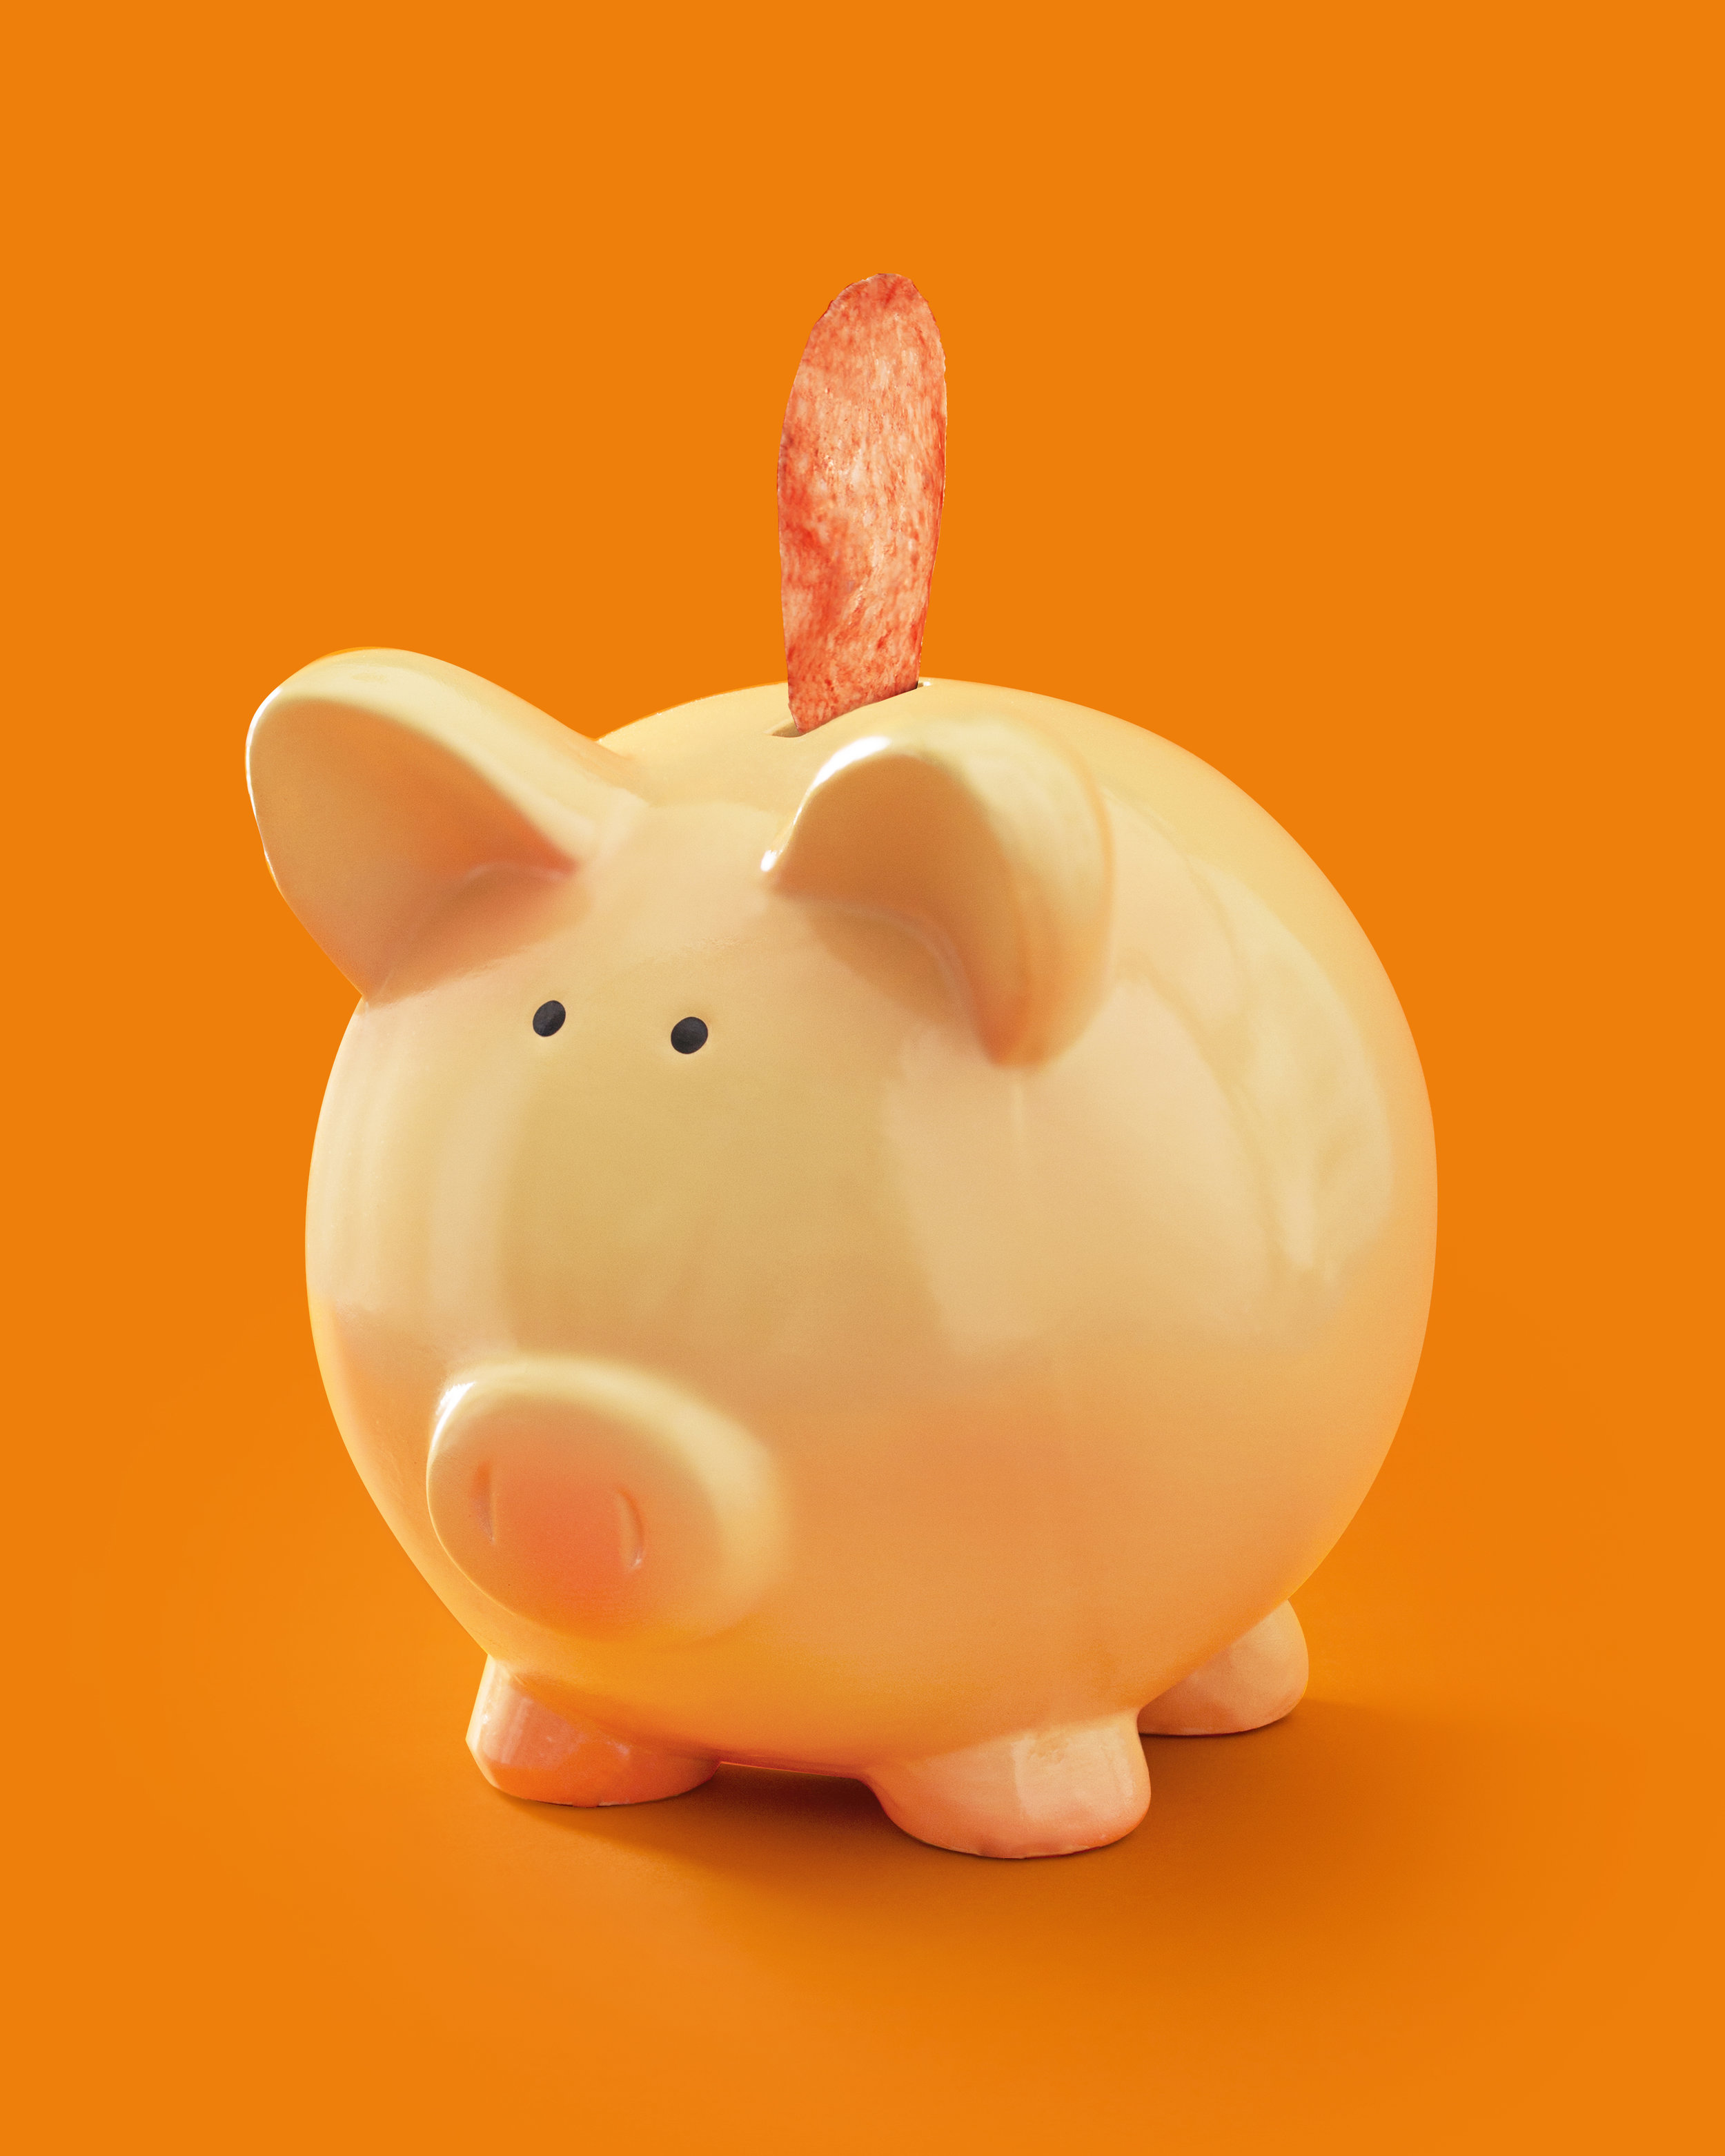 Cute & colorful piggy bank used to reference the importance of bank accounts.